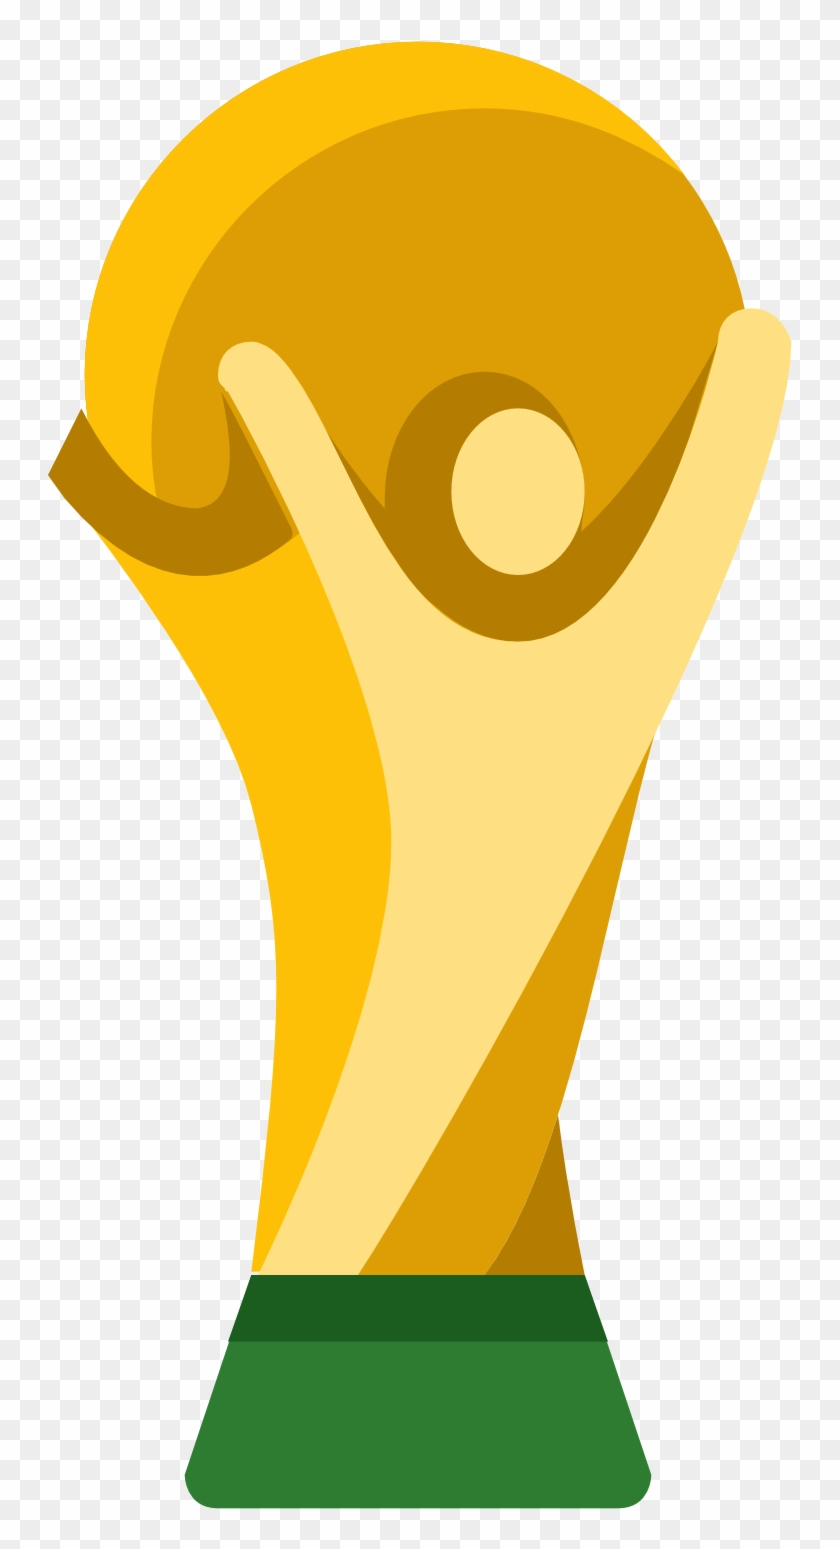 World Cup Icon Free Download - World Cup Trophy Png - Free